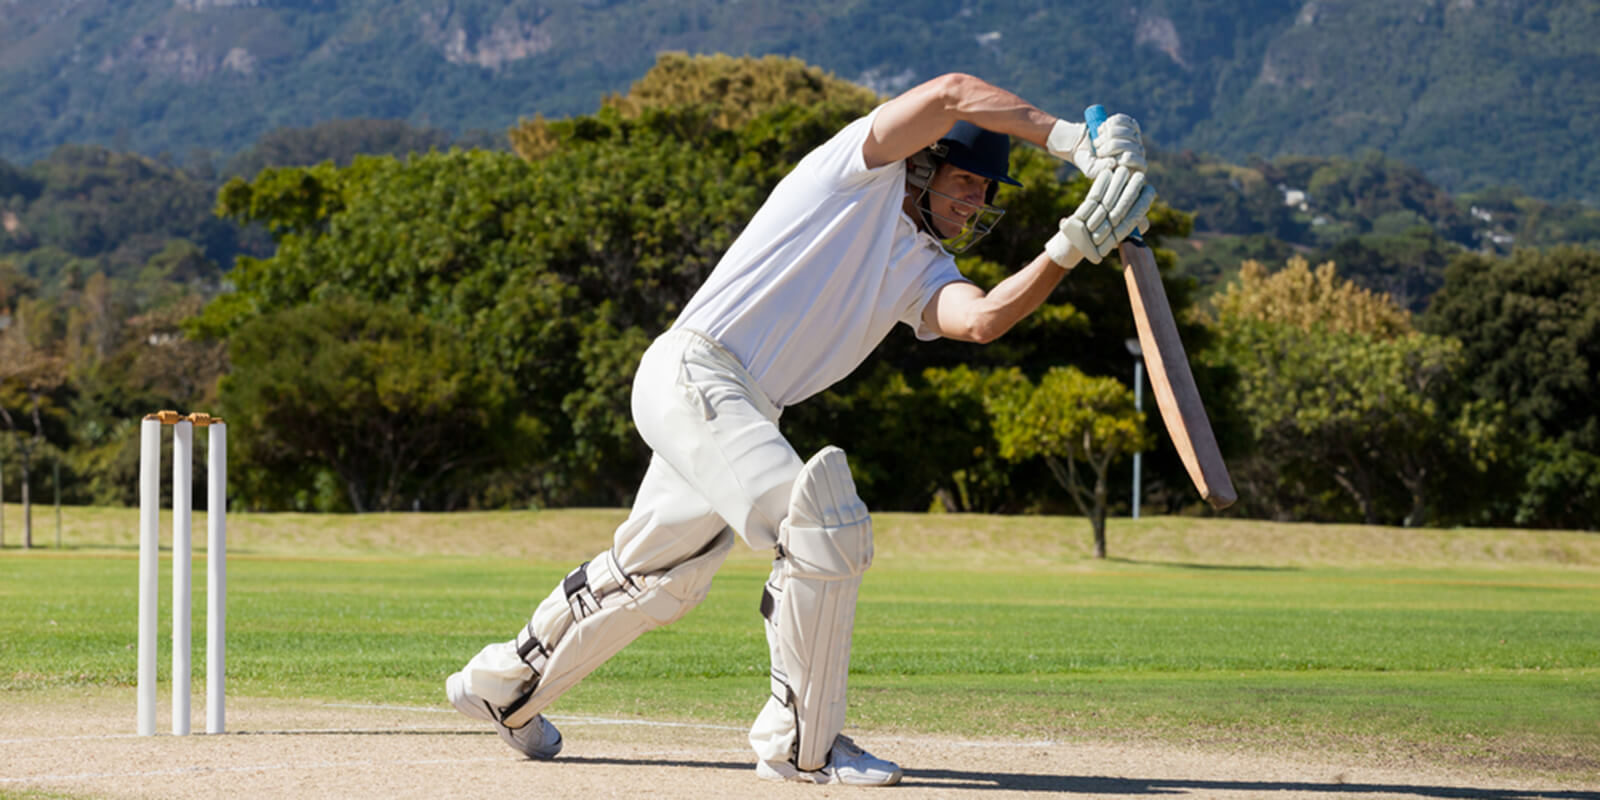 Cricketer batting a ball in front of a wicket on a sunny day